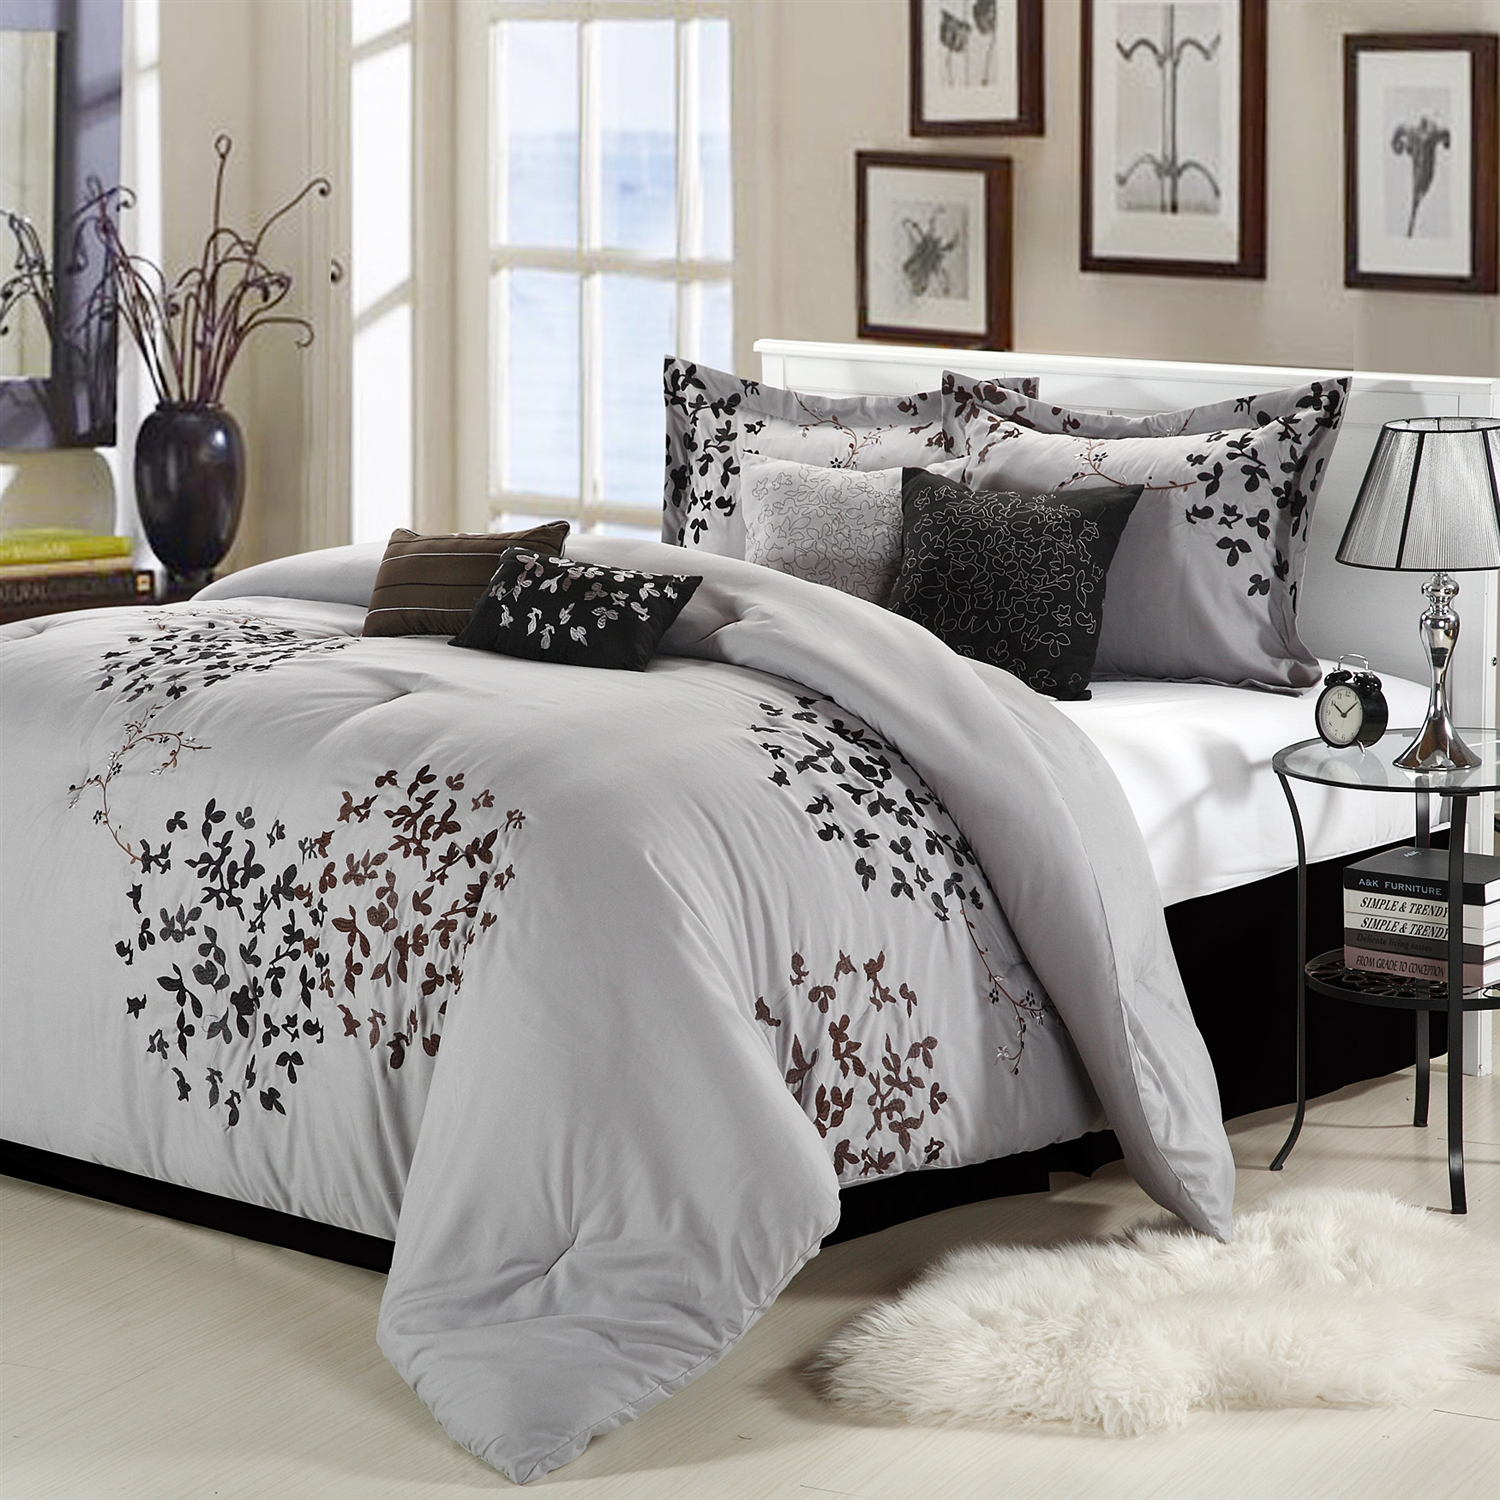 Queen size 8 Piece Comforter Set in Silver Gray Black Brown Floral